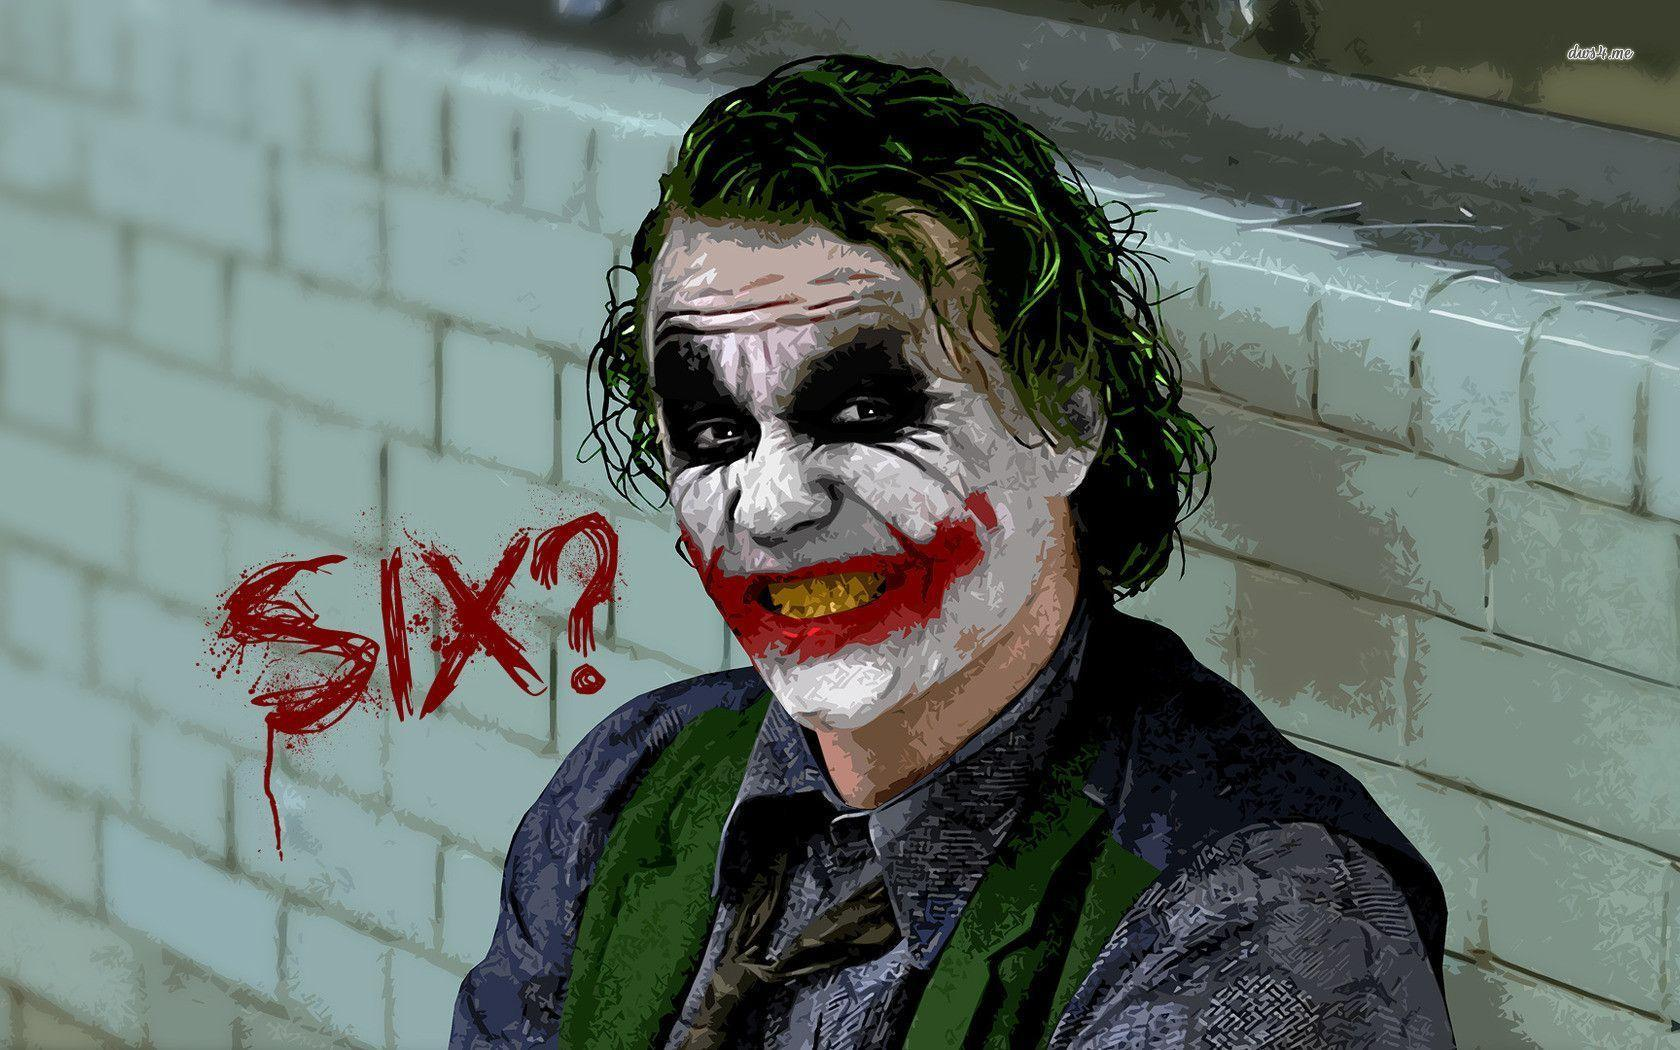 Joker - The Dark Knight wallpaper - Movie wallpapers - #